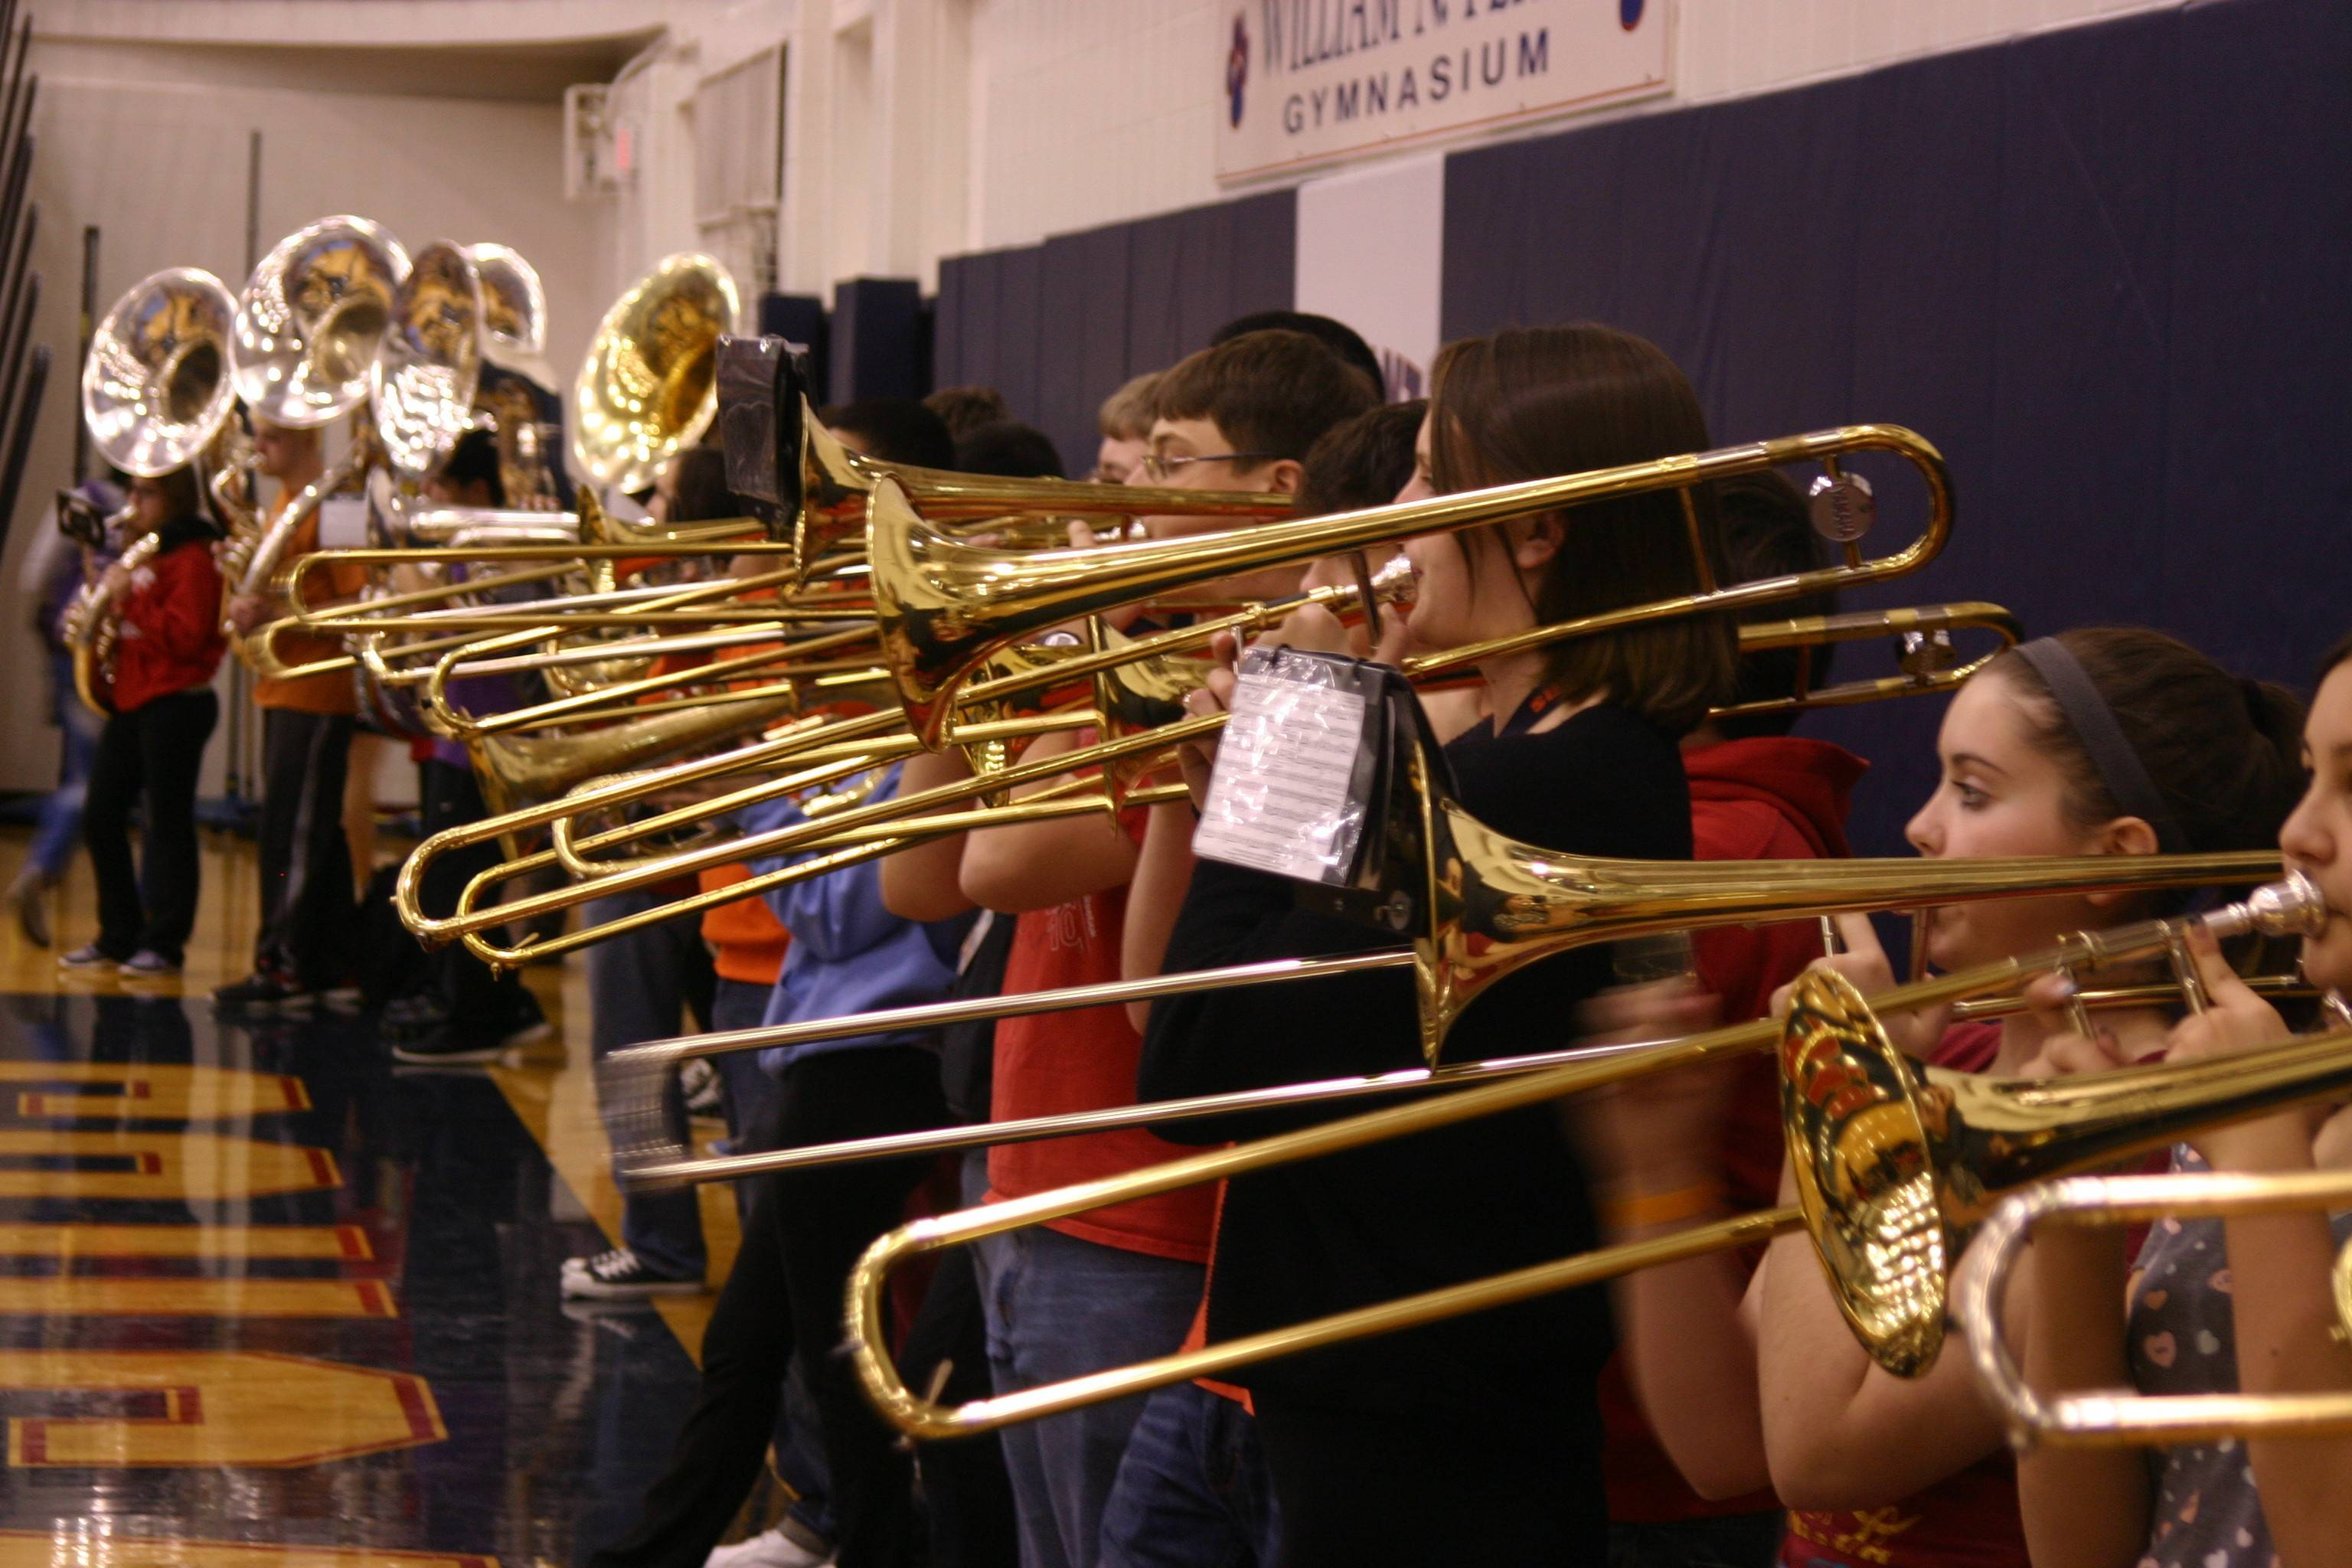 The Conant High School band plays as part of Friday's pep rally celebrating the coed cheerleading team's state championship.